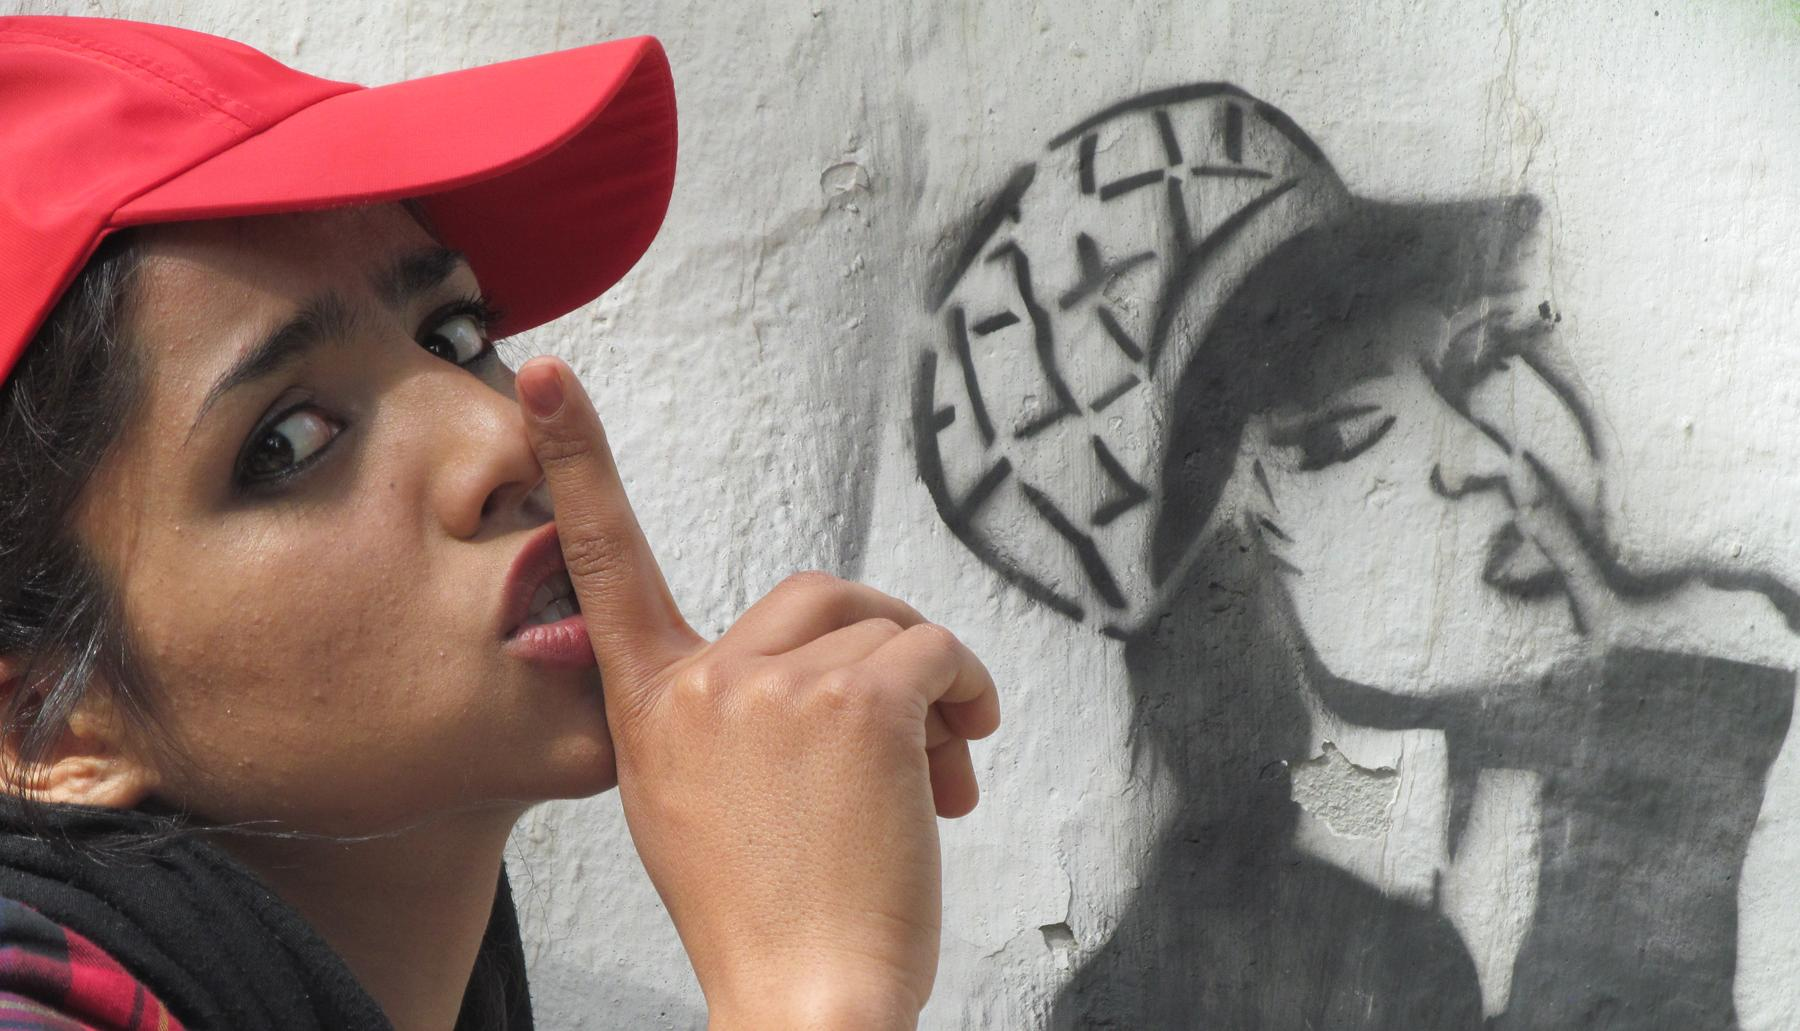 Filmmaker Rokhsareh Ghaem Maghami on Afghan rapper Sonita: 'I just wanted her and myself to win'